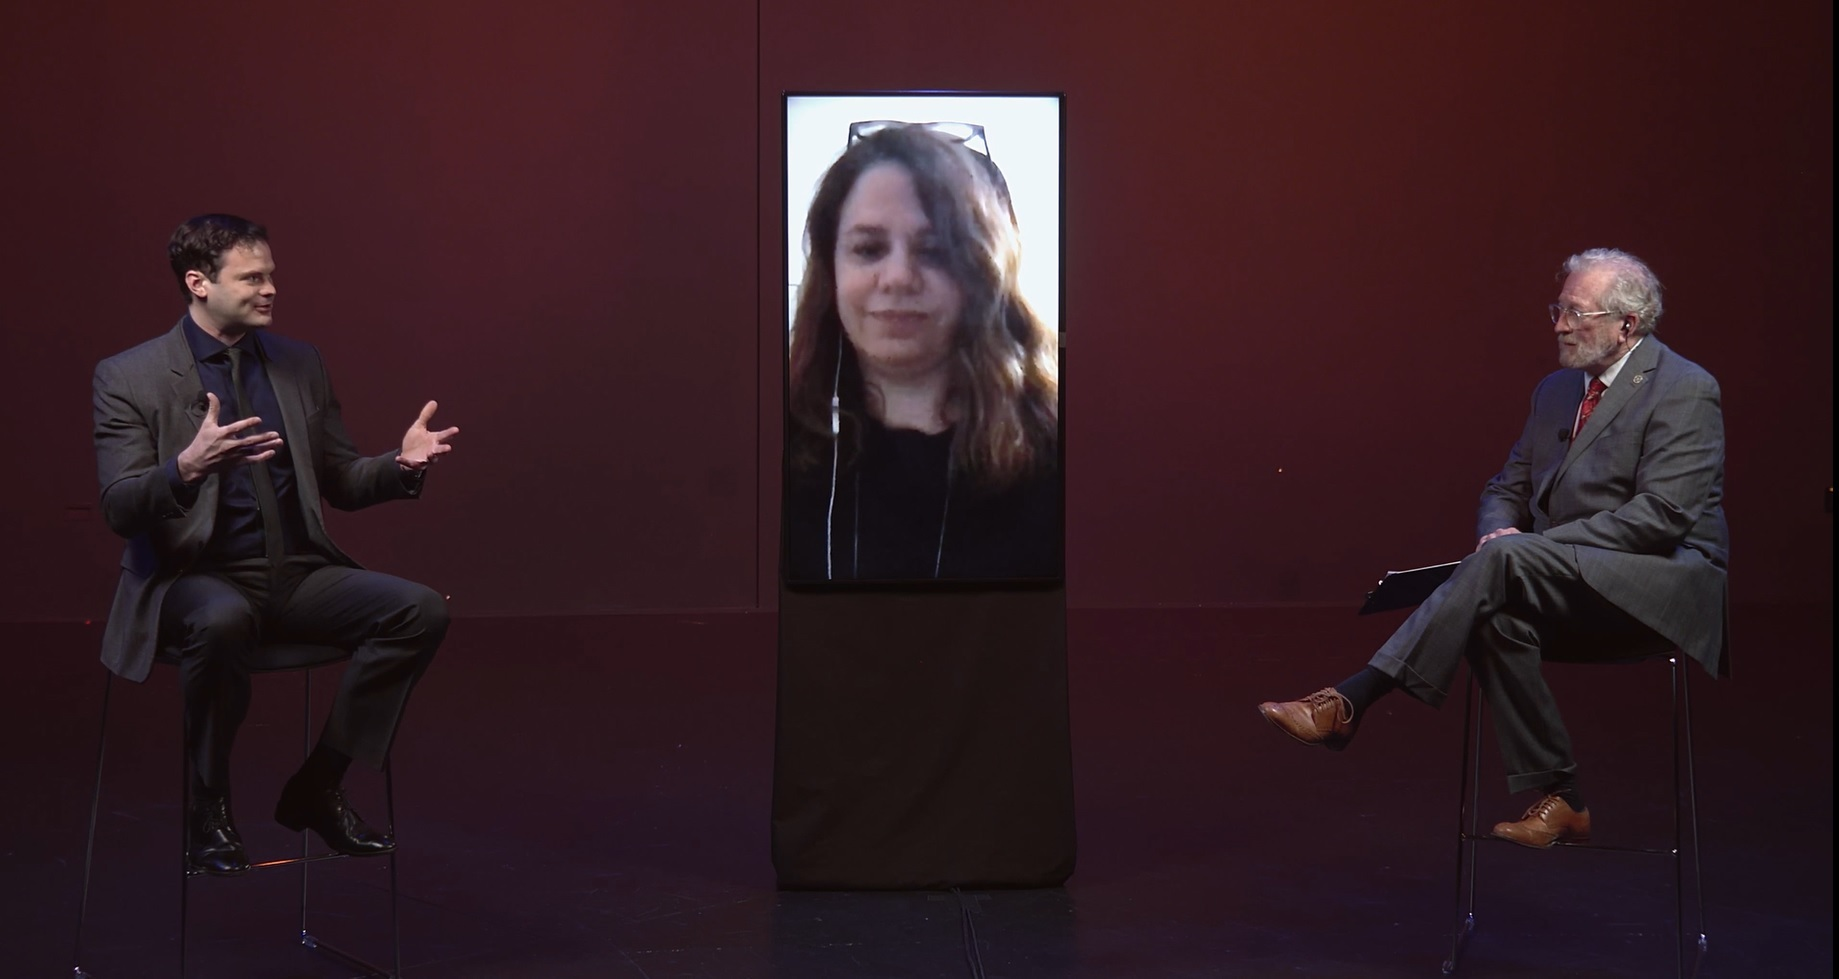 Three people sit on a panel discussion, two who are physically present in the theater space and another who is attending virtually on a large vertical screen